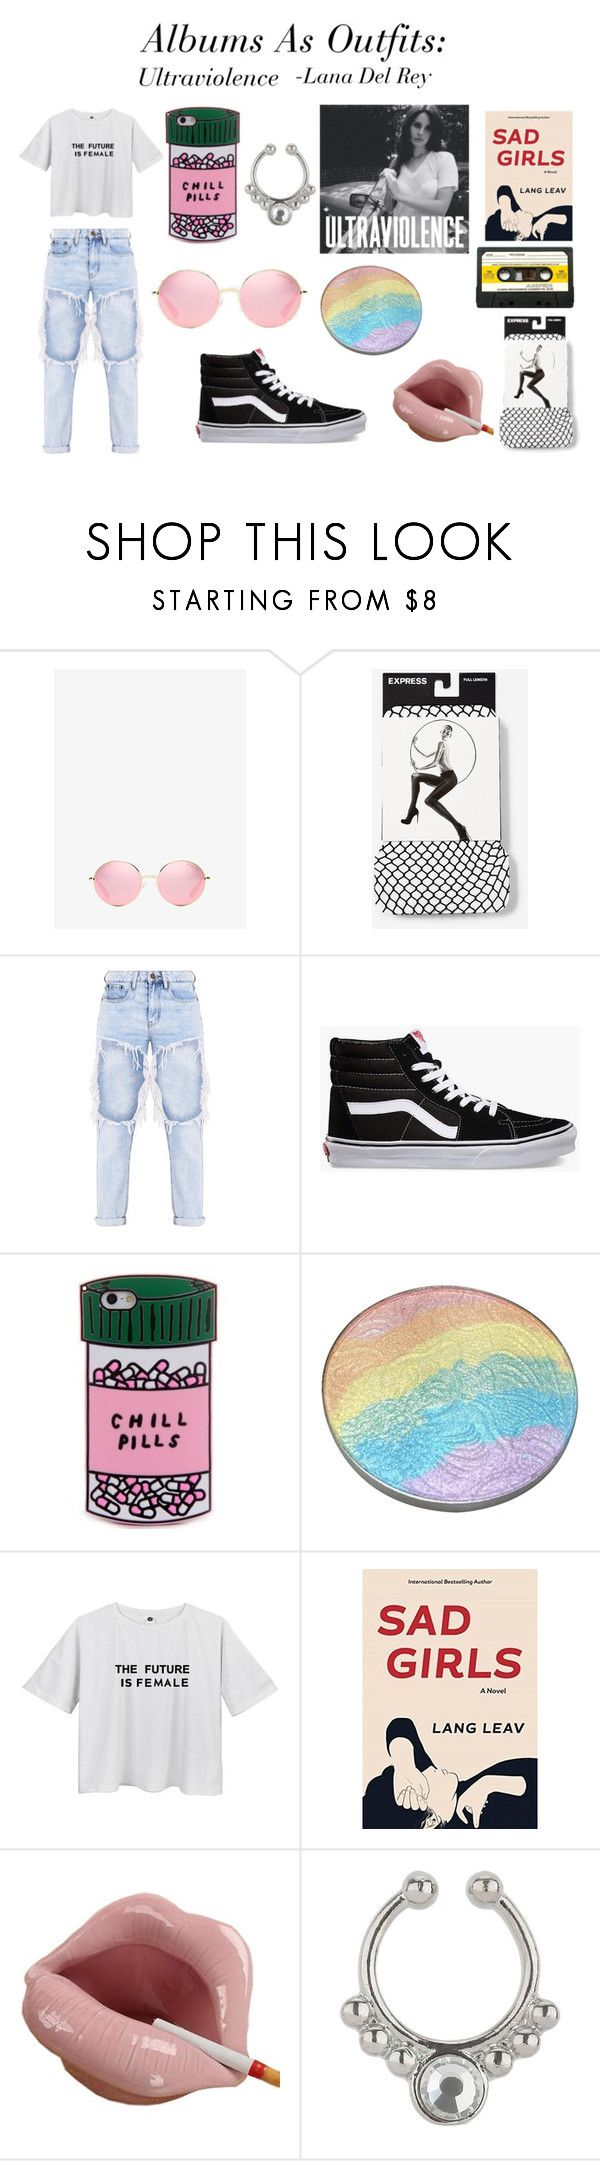 """Albums As Outfits: Ultraviolence"" by graceedonnelly ❤ liked on Polyvore featuring Michael Kors, Express, Vans, Miss Selfridge, lanadelrey, polyvoreeditorial, sadgirl and UltraViolence"